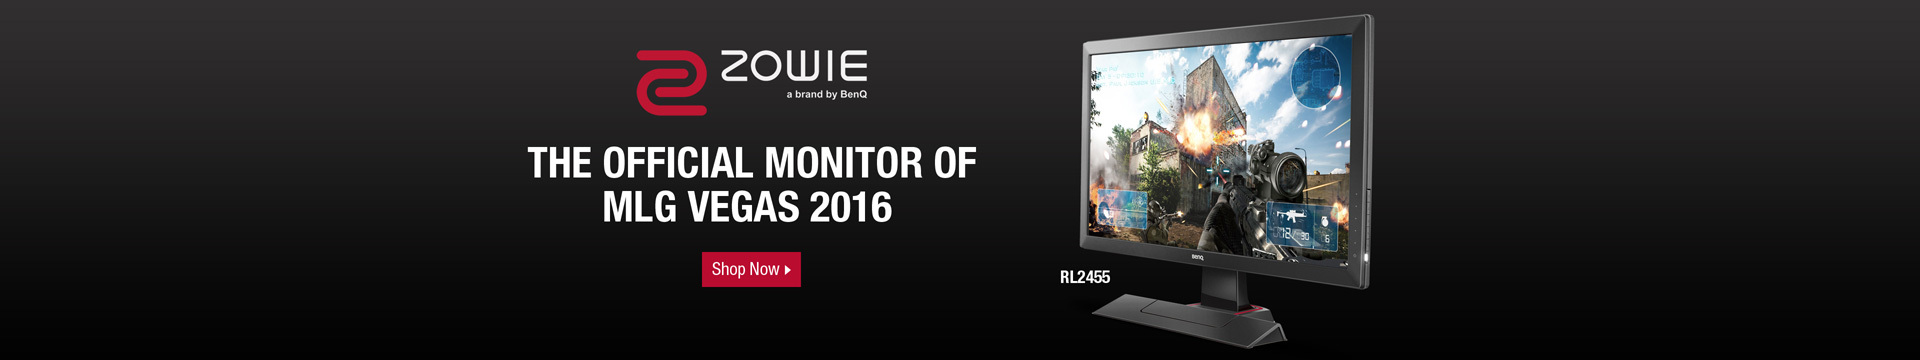 The official monitor of MLG Vegas 2016